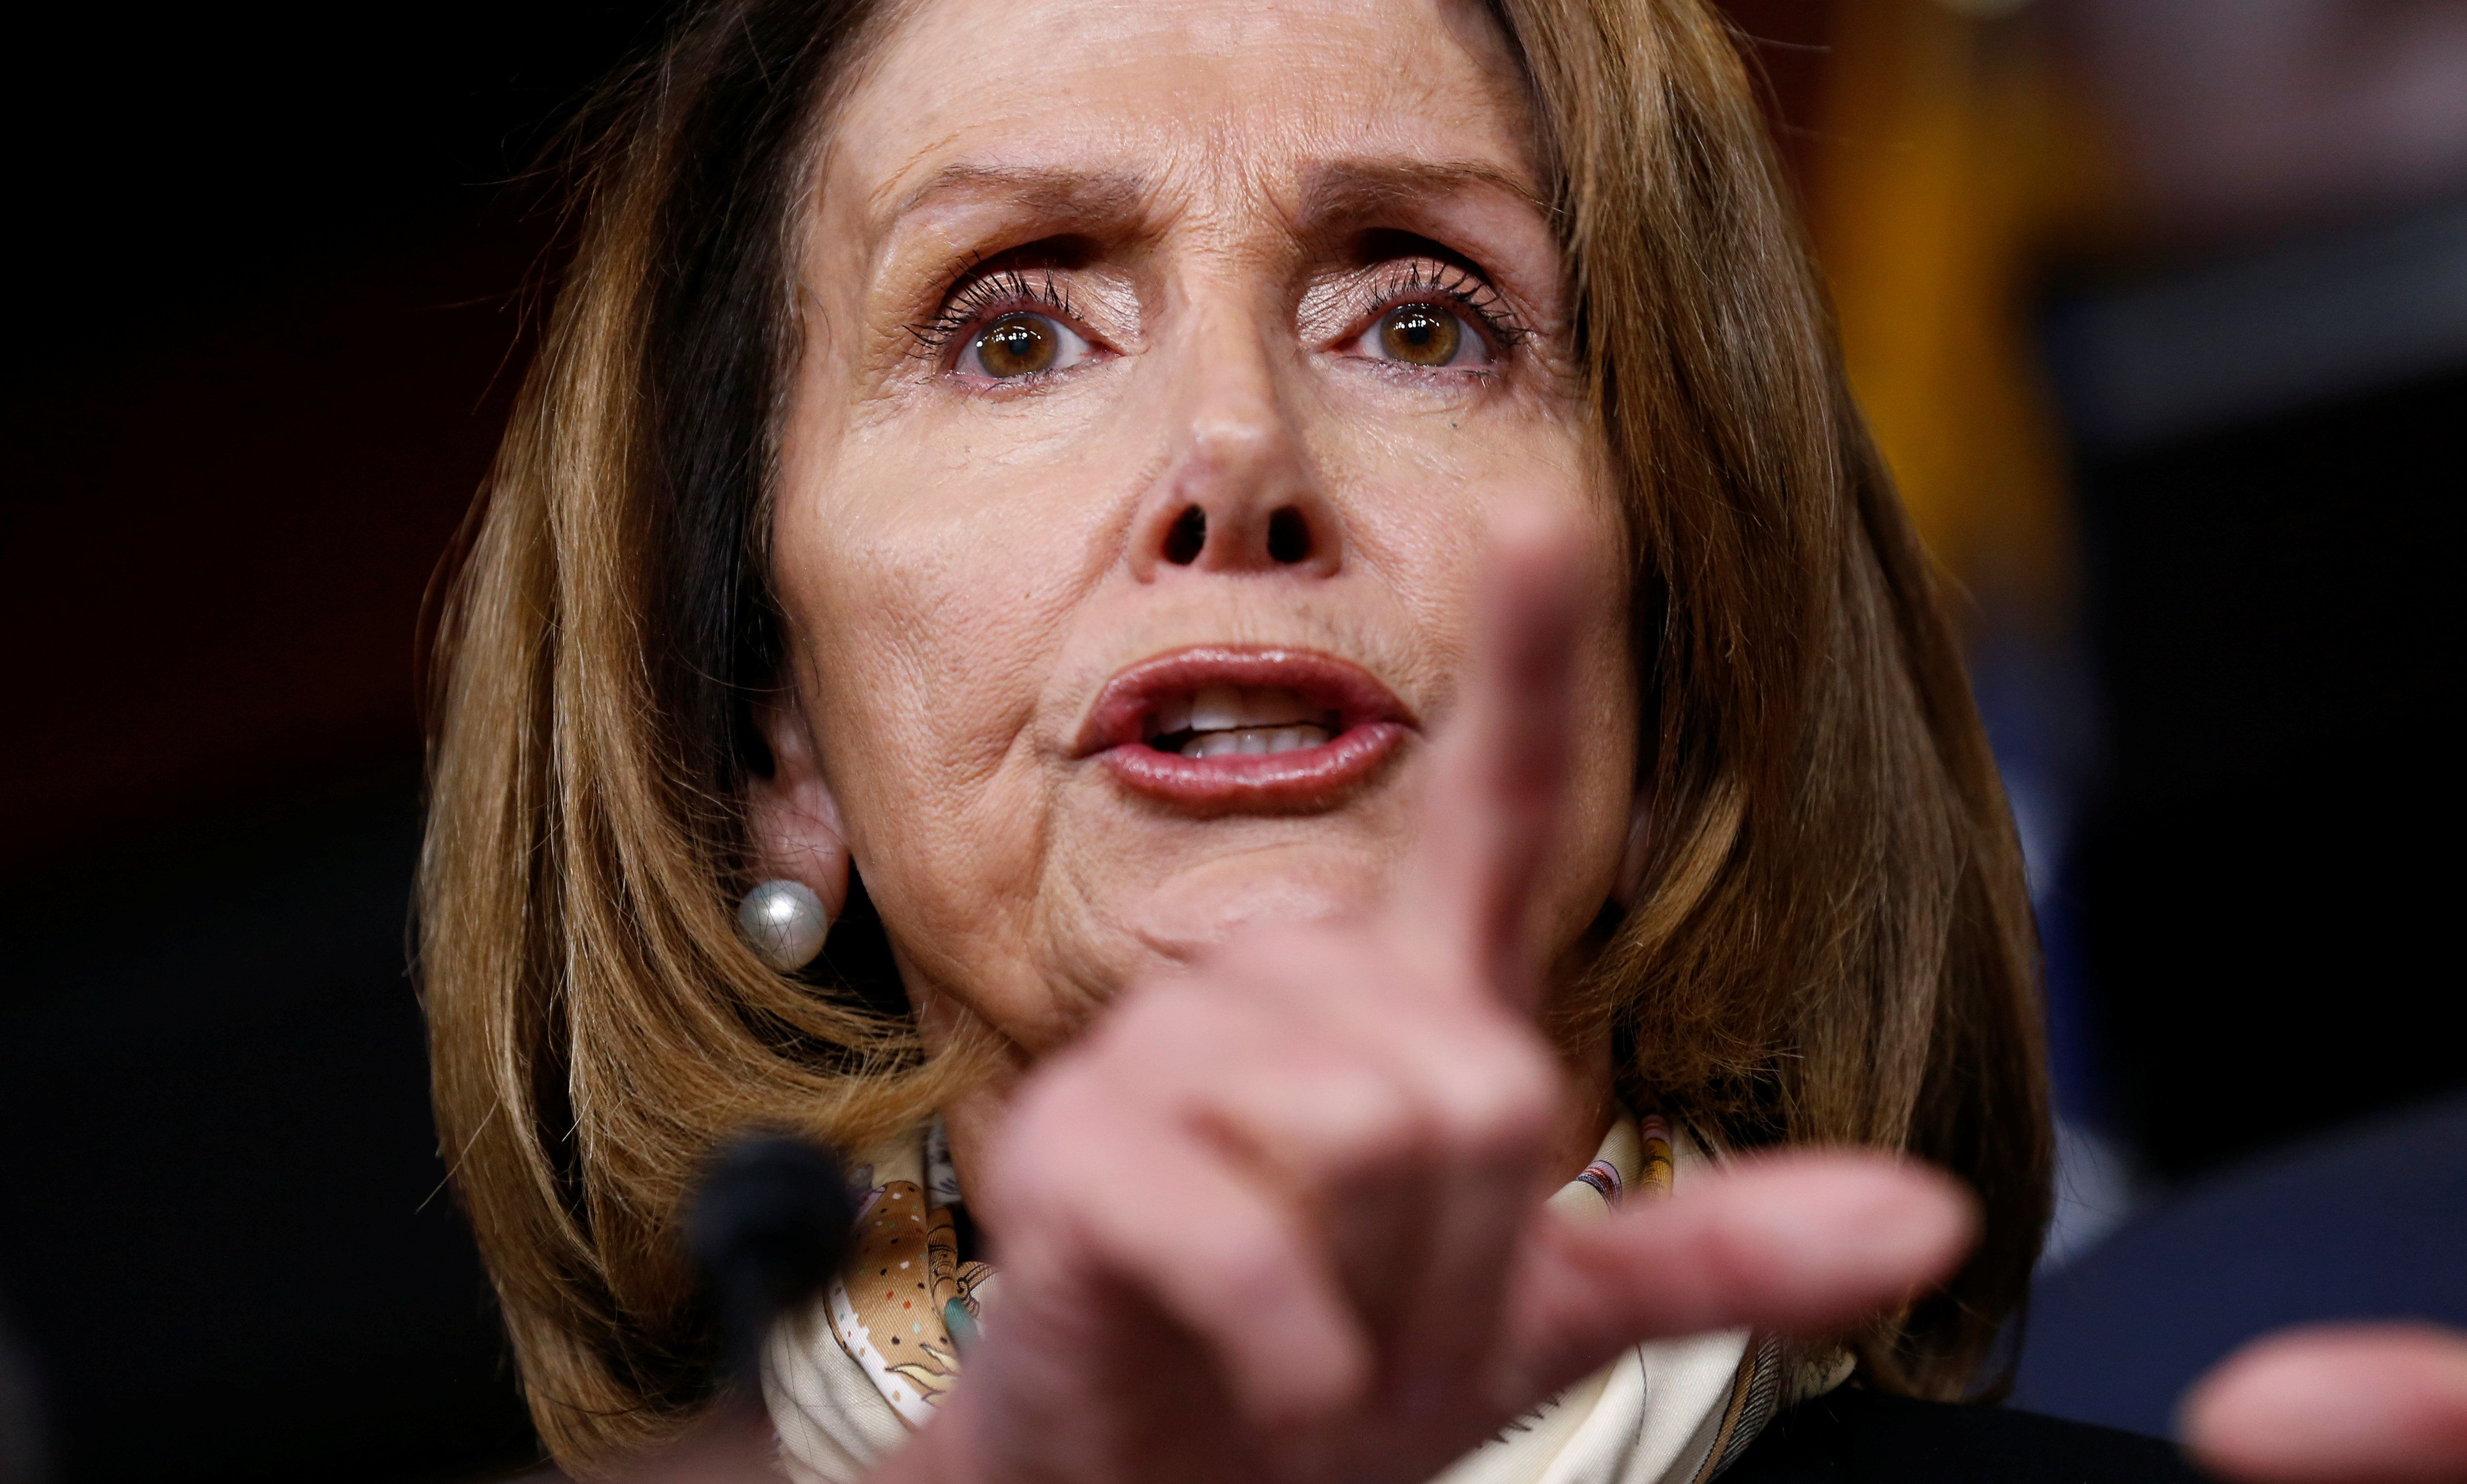 House Minority Leader Nancy Pelosi (D-CA) speaks during a news conference after President Donald Trump and the U.S. Congress failed to reach a deal on funding for federal agencies on Capitol Hill in Washington, U.S., January 20, 2018.  REUTERS/Joshua Roberts